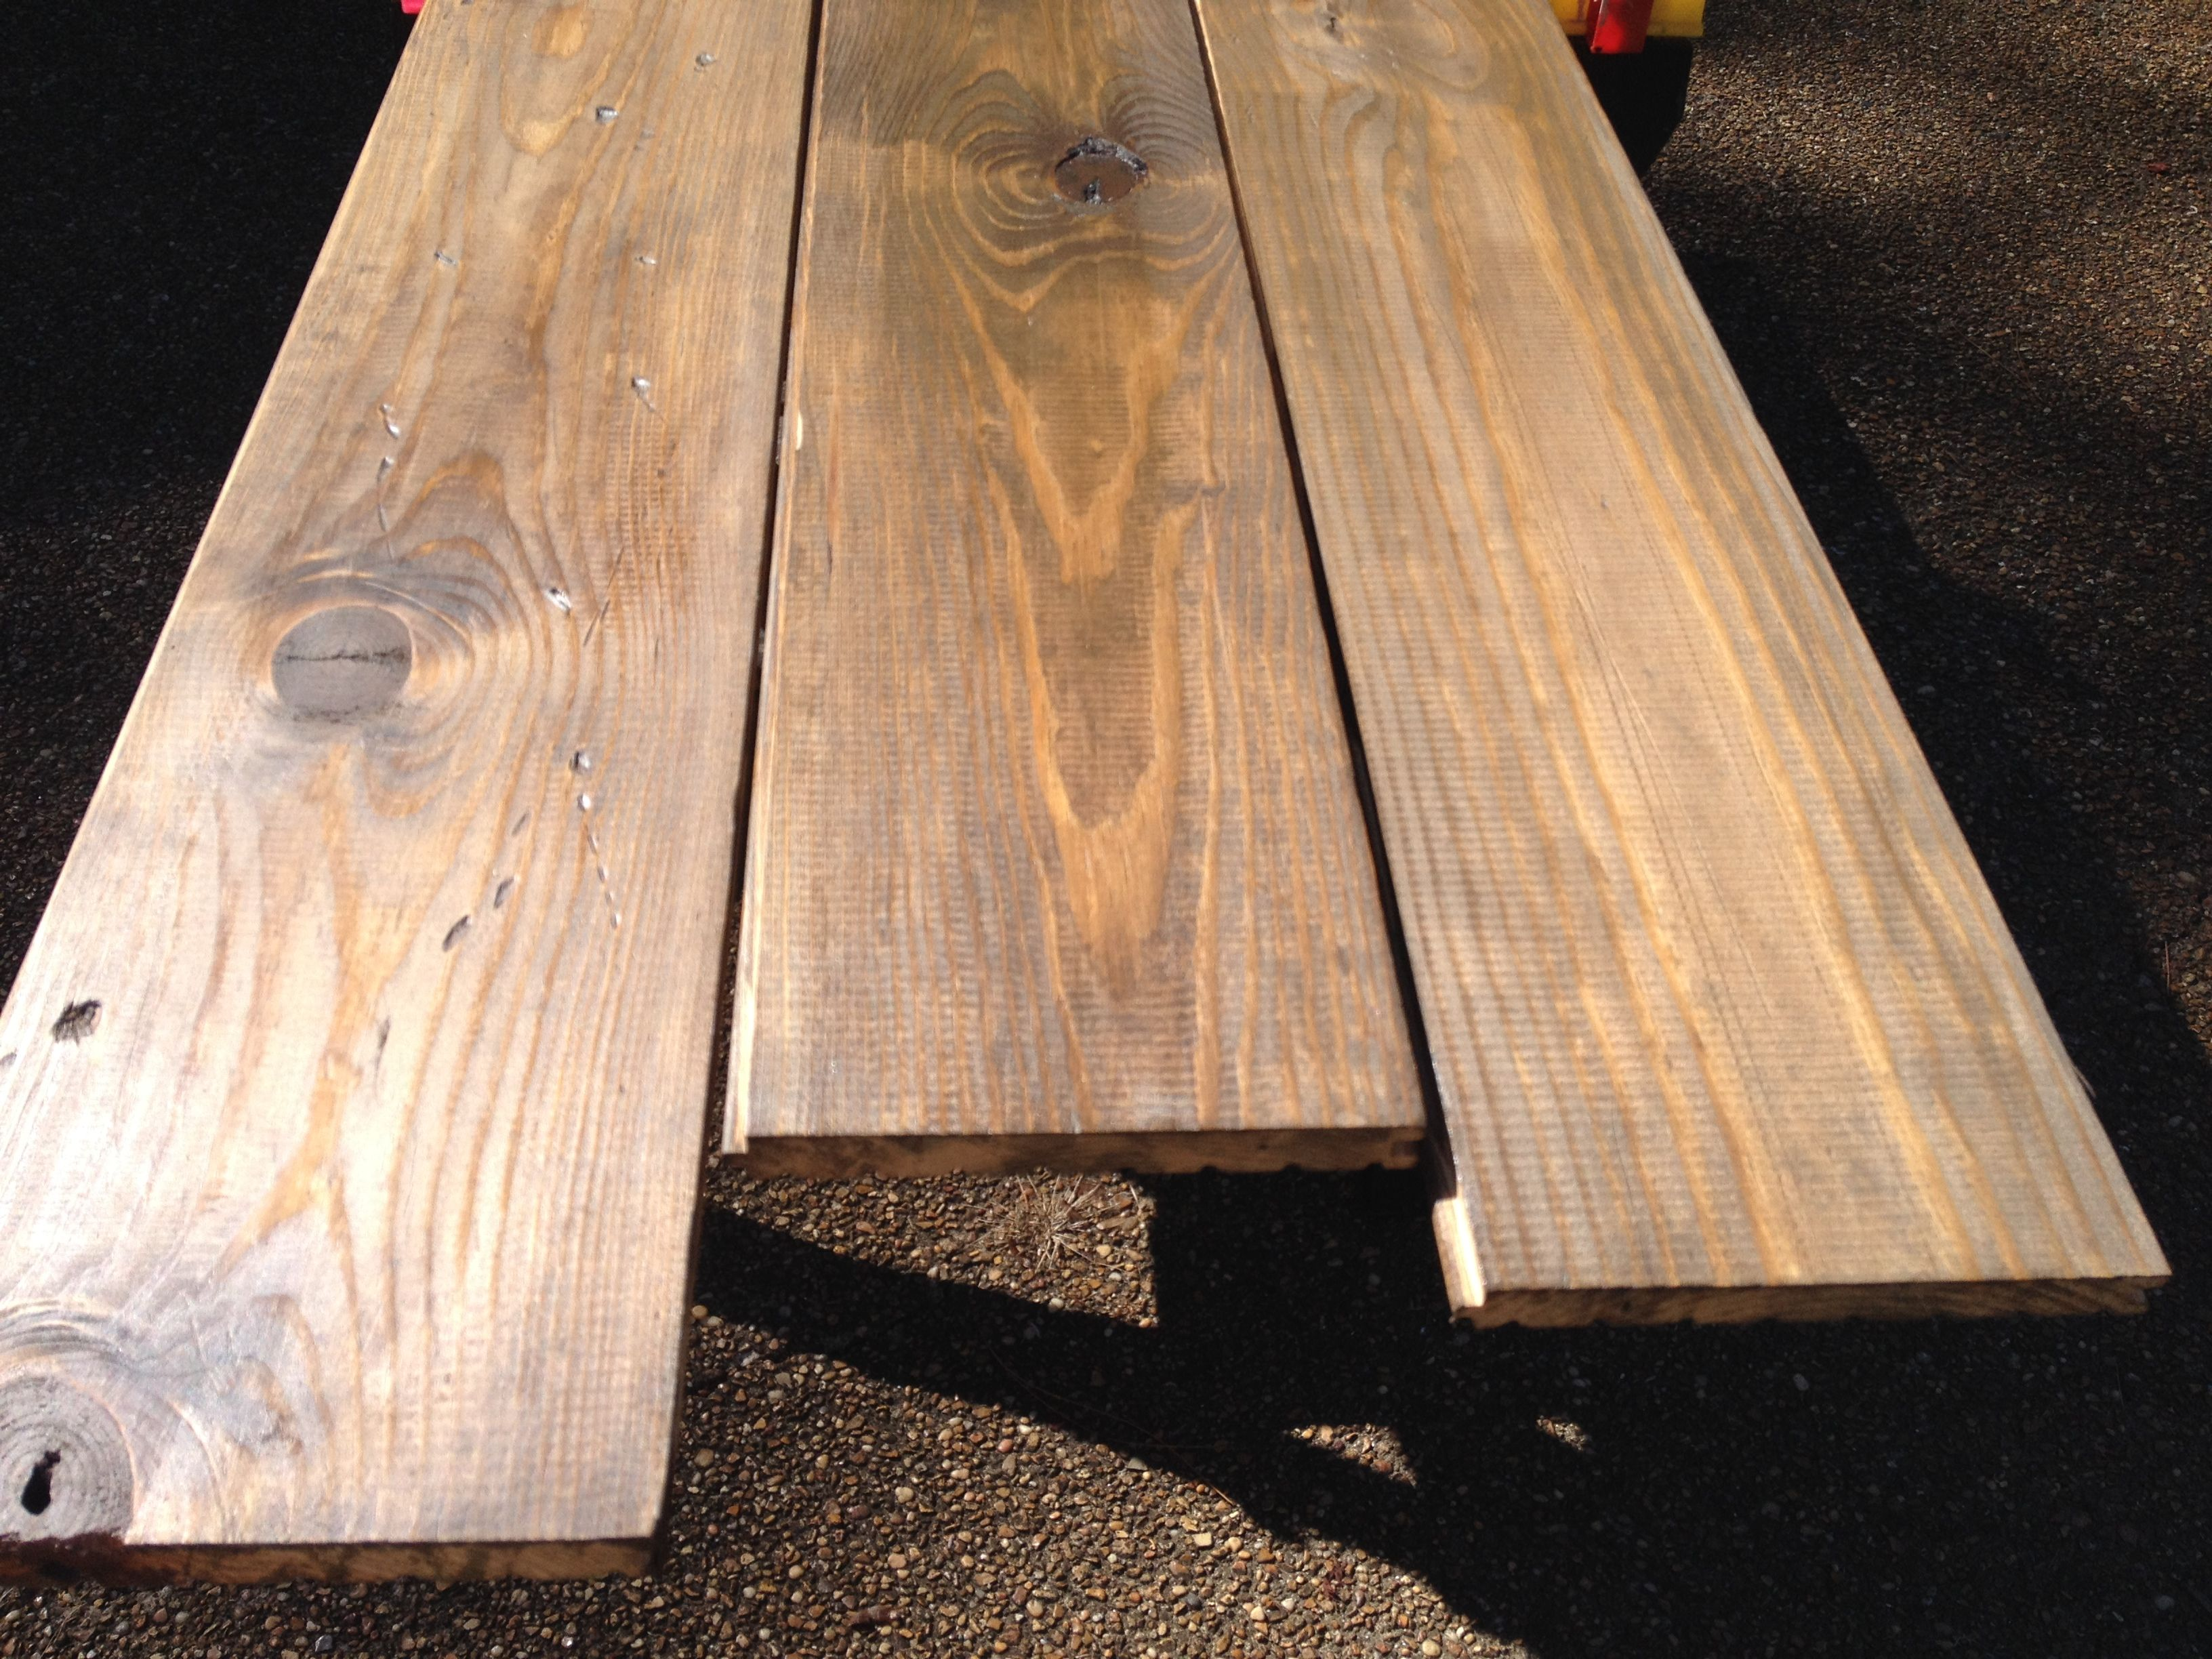 Staining pine wood dark - Classic Dark Stained Southern Yellow Pine These Have Pre Conditioner And Two Coats Of